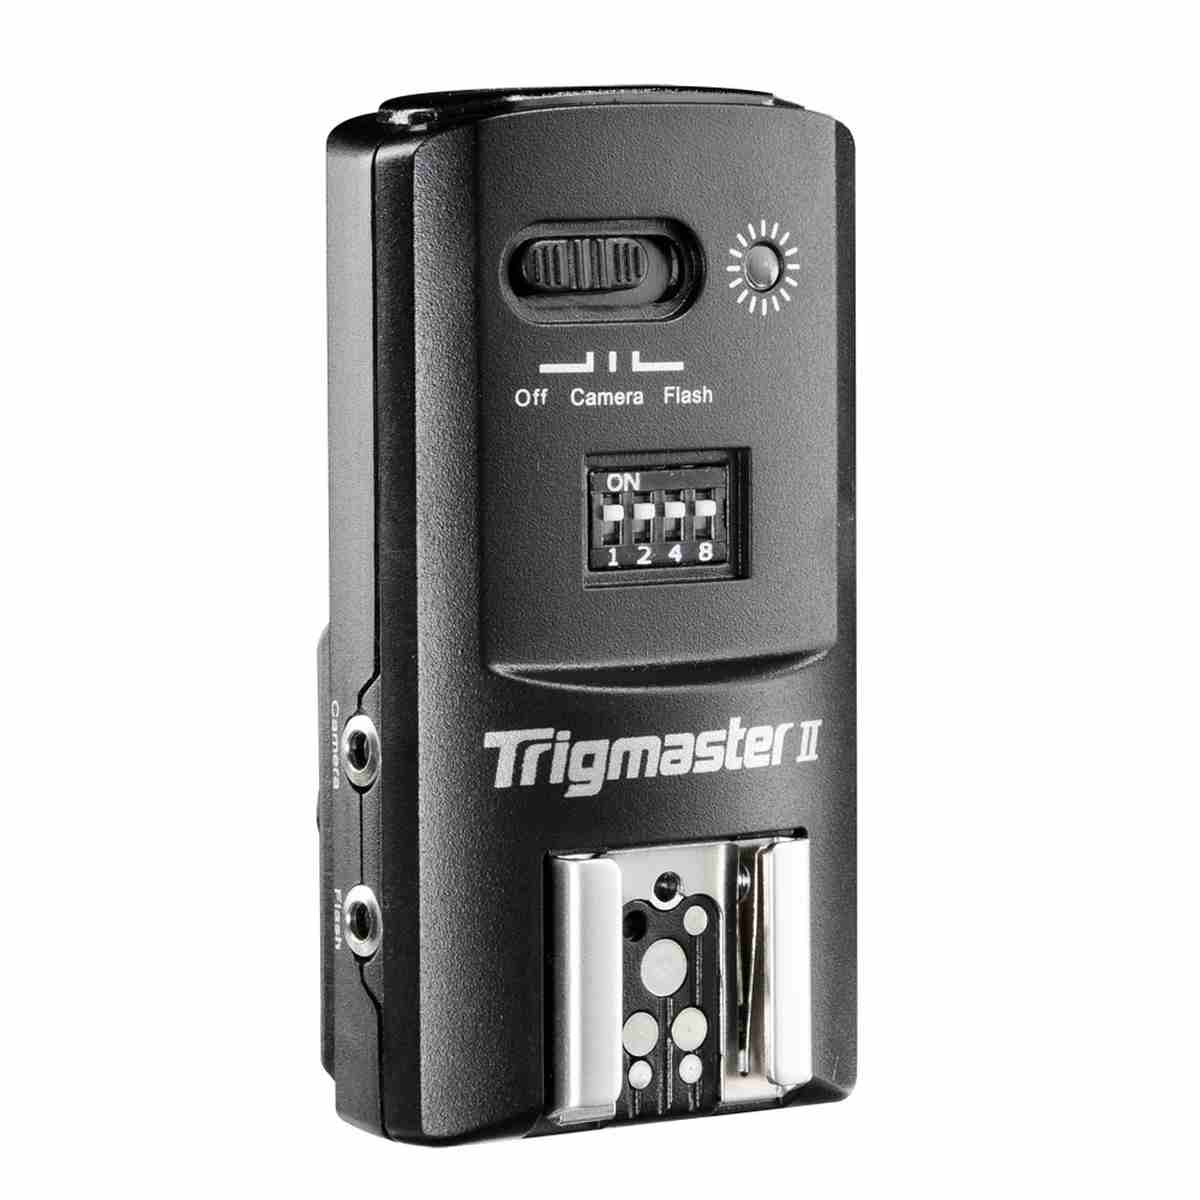 Aputure Trigmaster II 2.4G Receiver for Nikon